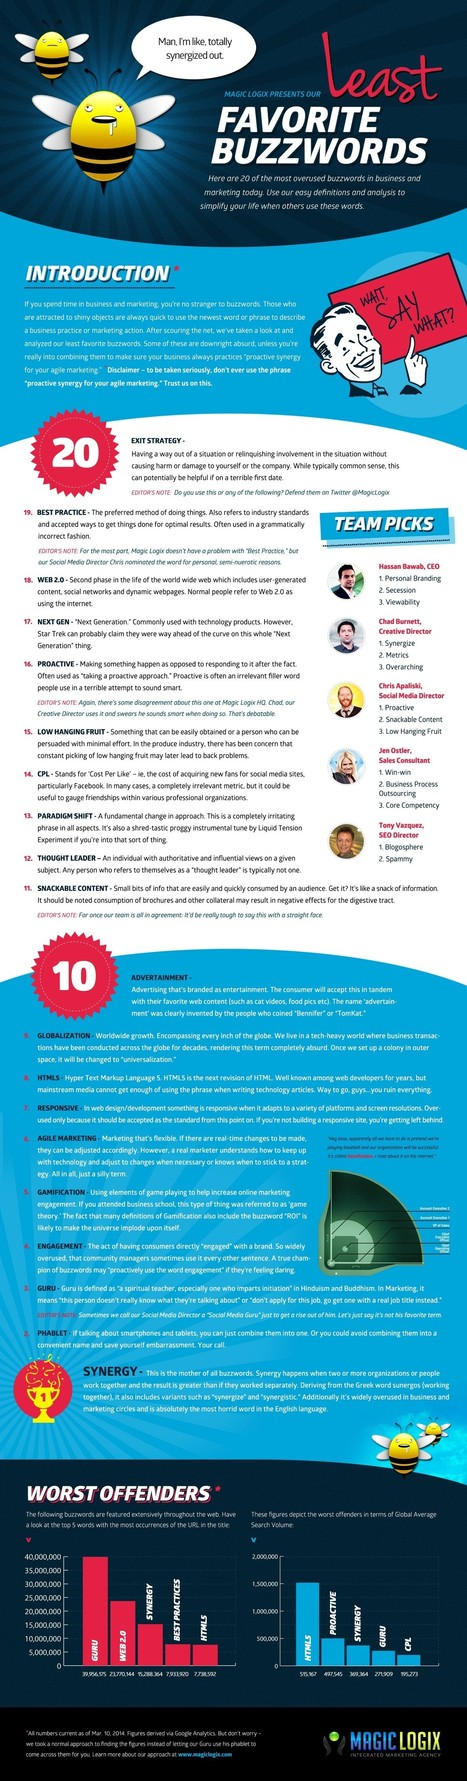 Top 20 Overused buzzwords in Business & Marketing | All Infographics | Scoop.it